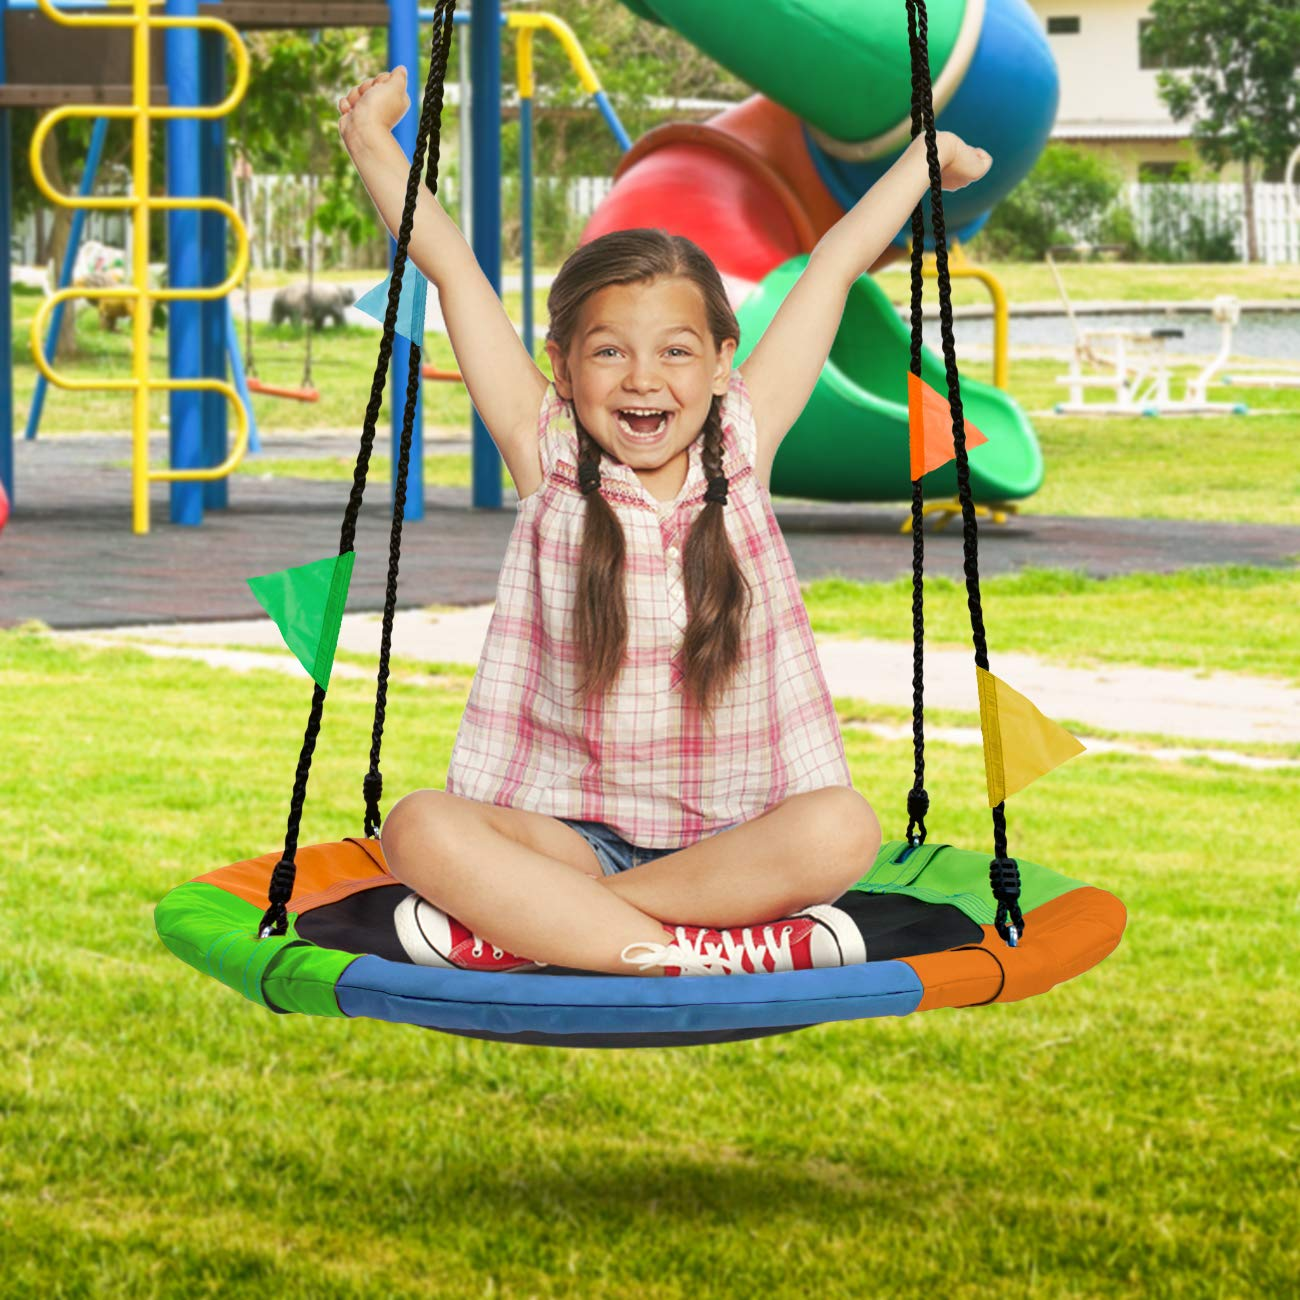 Sorbus Saucer Tree Swing in Multi-Color Rainbow - Kids Indoor/Outdoor Round Mat Swing - Great for Tree, Swing Set, Backyard, Playground, Playroom - Accessories Included (Round - 24'') by Sorbus (Image #3)